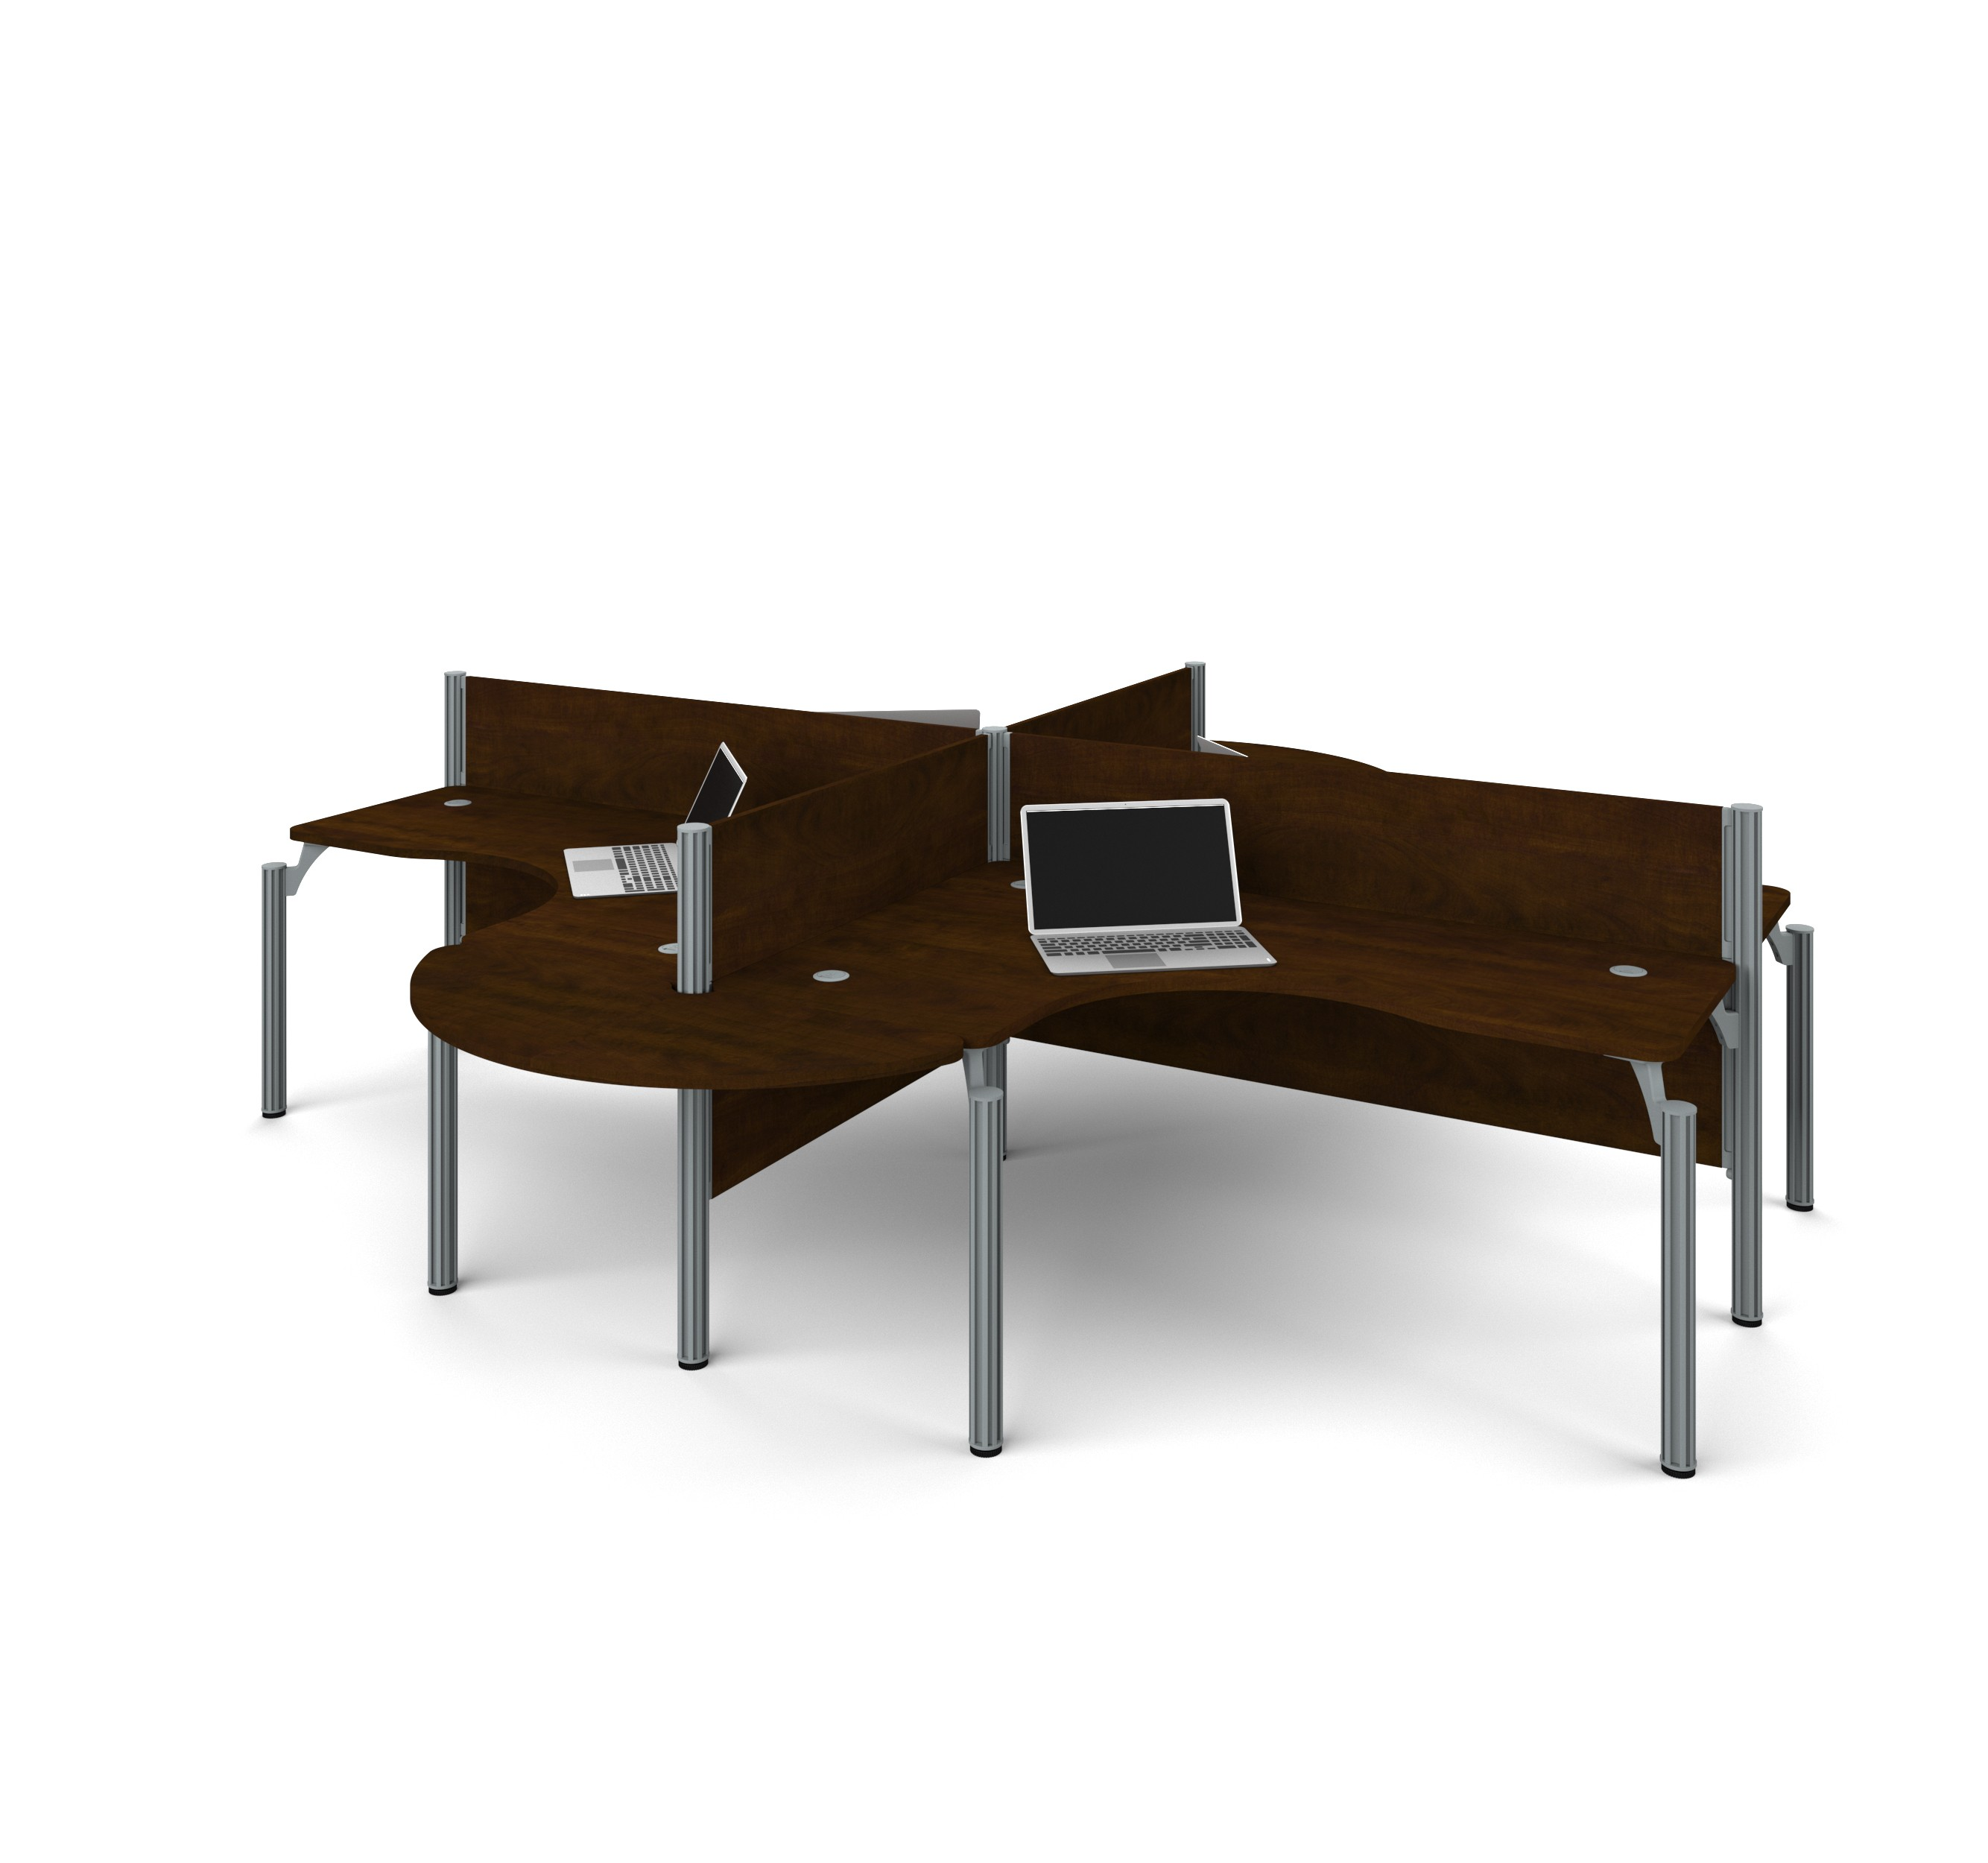 Bestar 100858a69 Probiz Four Ldesk Workstation With. Adult Desk Toys. Under Cabinet Refrigerator Drawers. Bisley Filing Cabinets 4 Drawer. Swing Arm Desk Lamp With Clamp. Parquet Coffee Table. Long Tables For Sale. Arts And Crafts Desks. Pen Holders For Desk